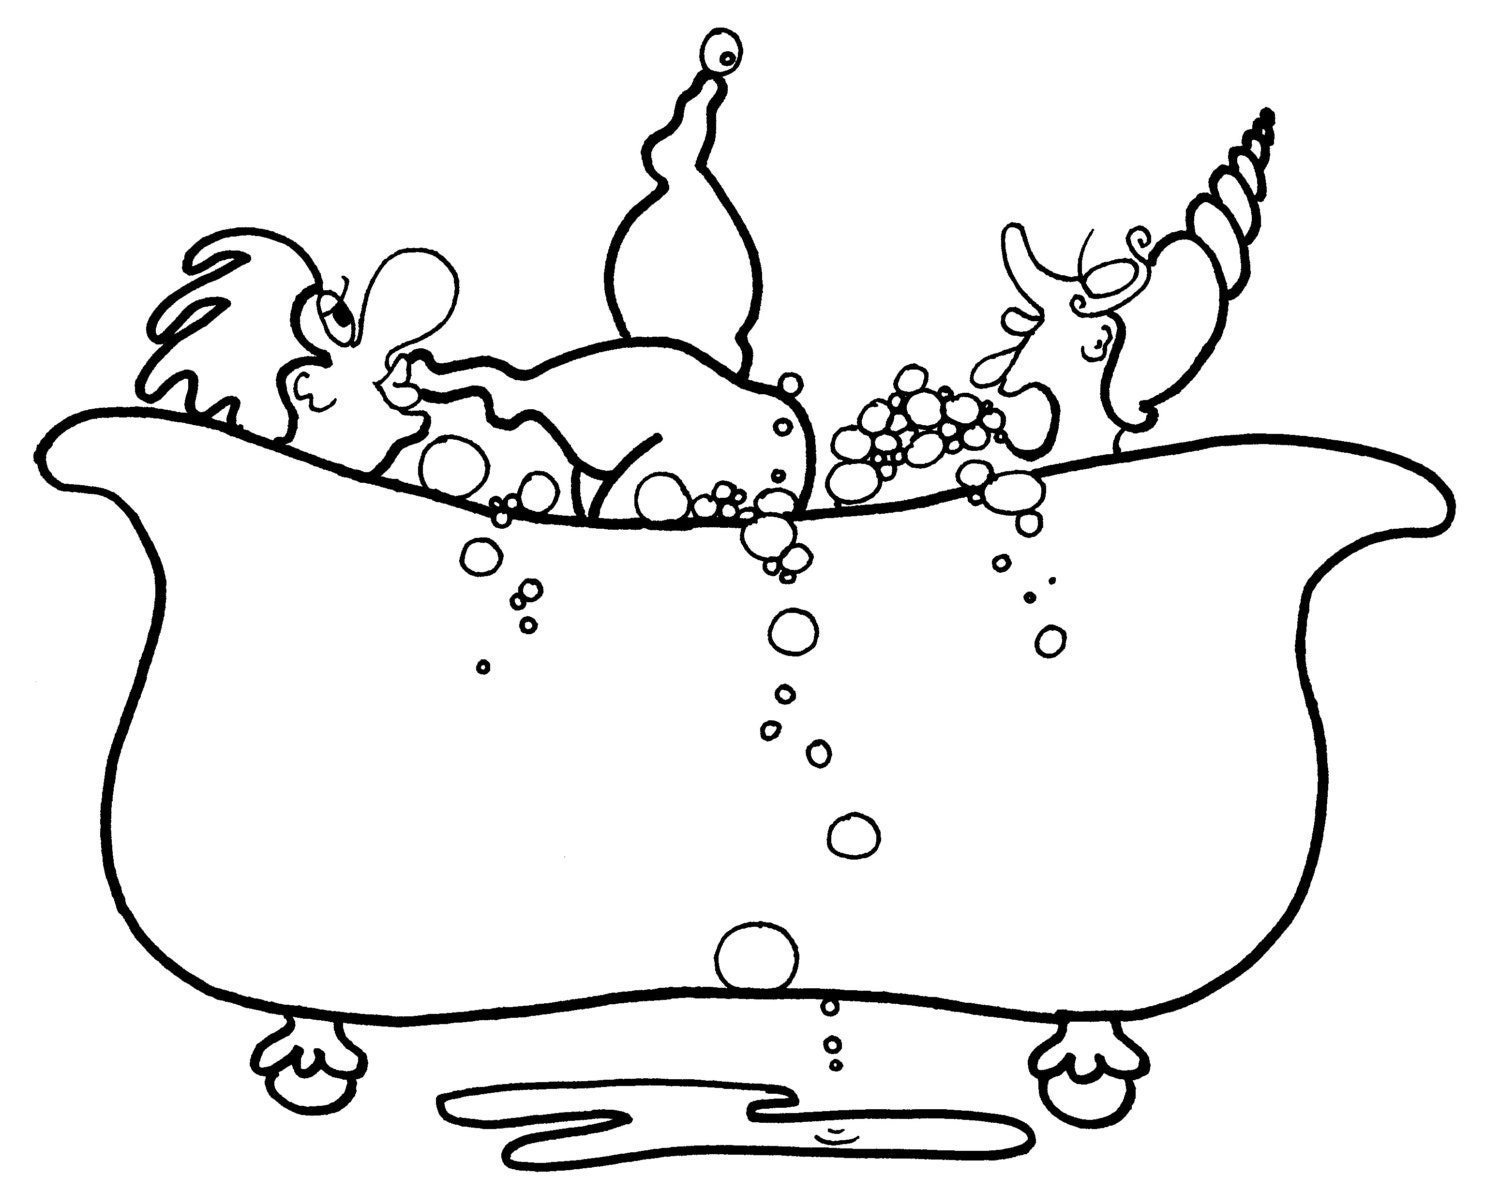 coloring pages bathtubs - photo#20